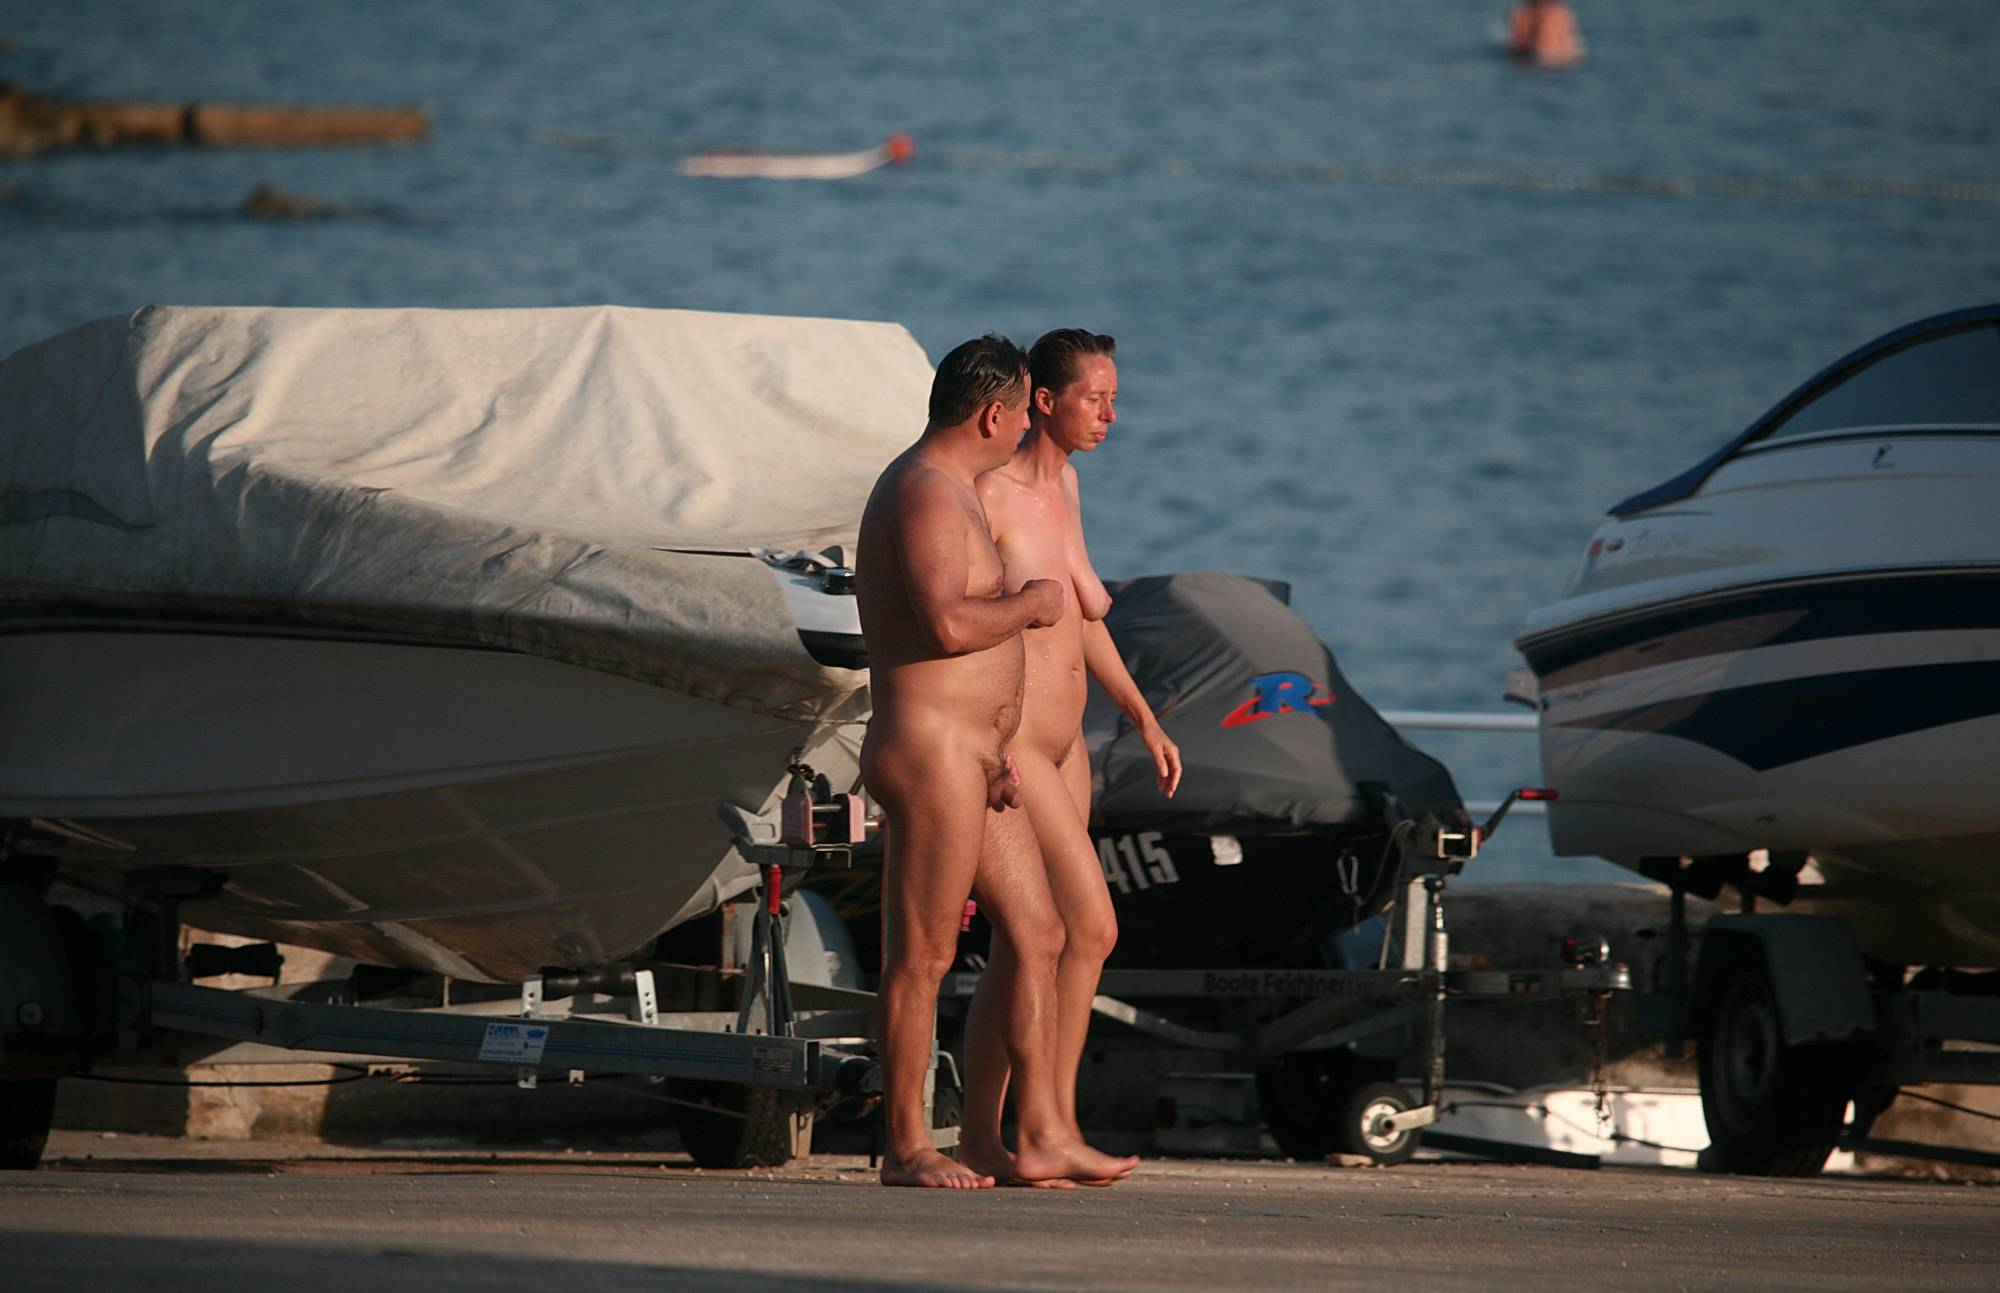 Nudist Gallery Walk by the Boats and Car - 2